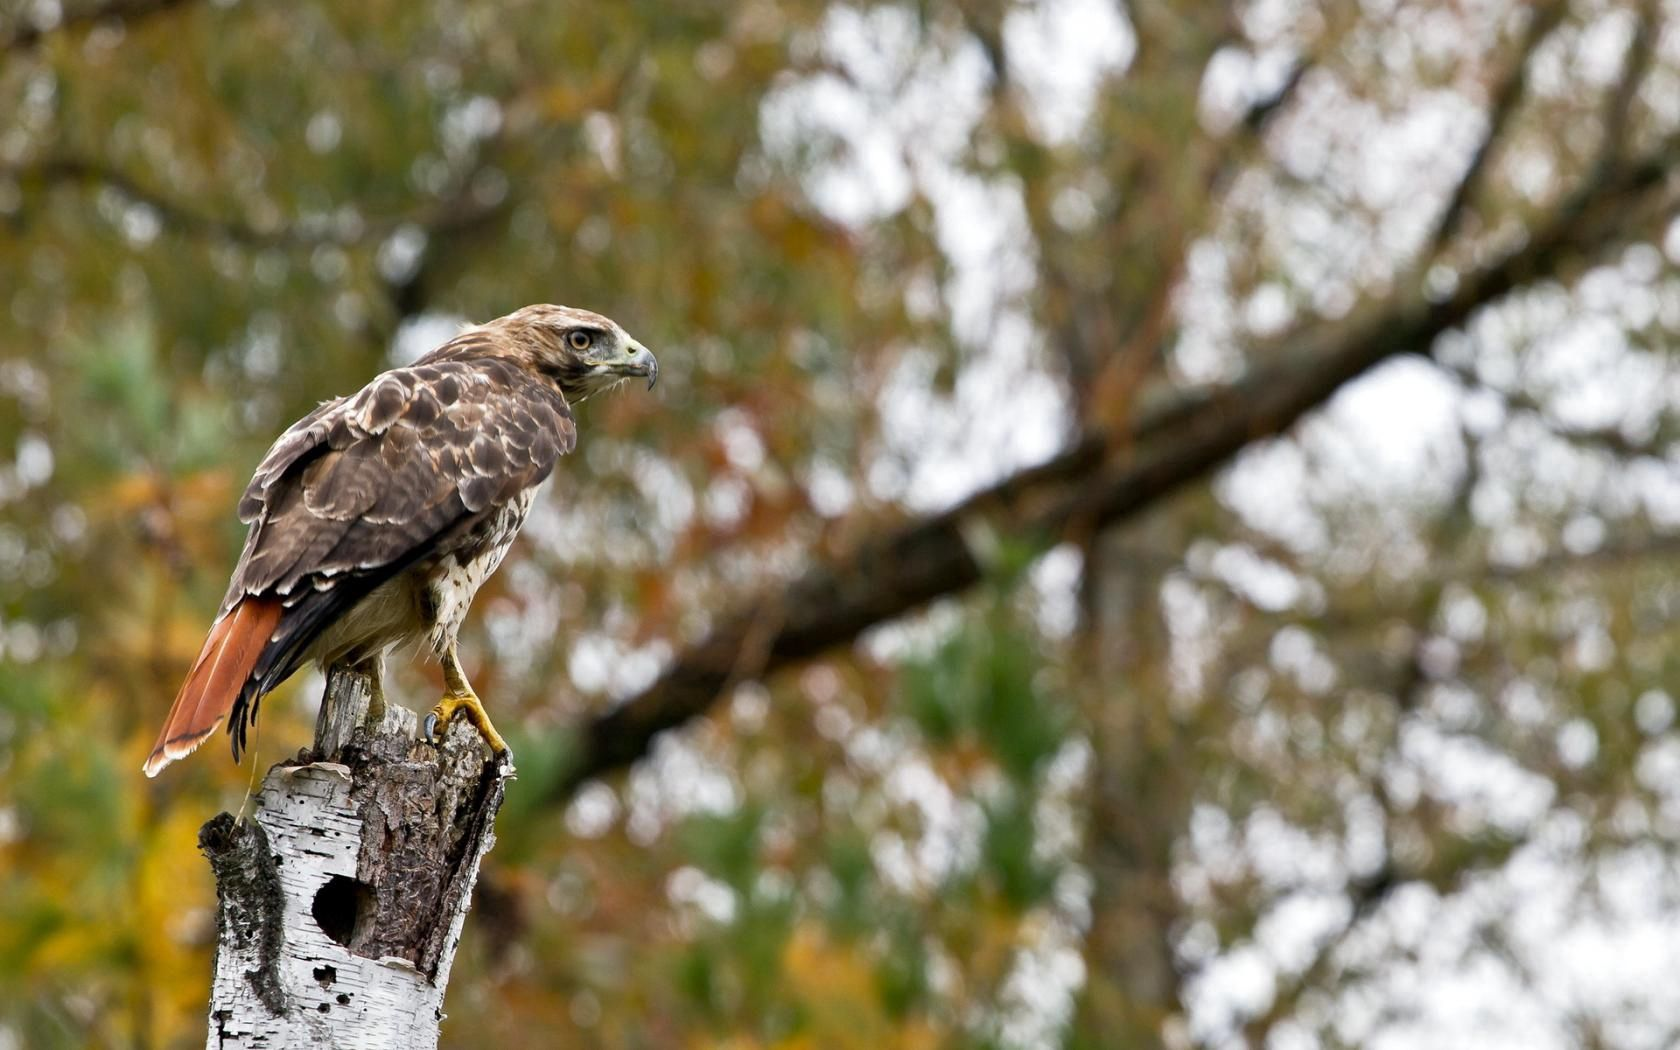 125560 download wallpaper Animals, Bird, Eagle, Wood, Tree, Blur, Smooth, Wings, Sit, Predator screensavers and pictures for free